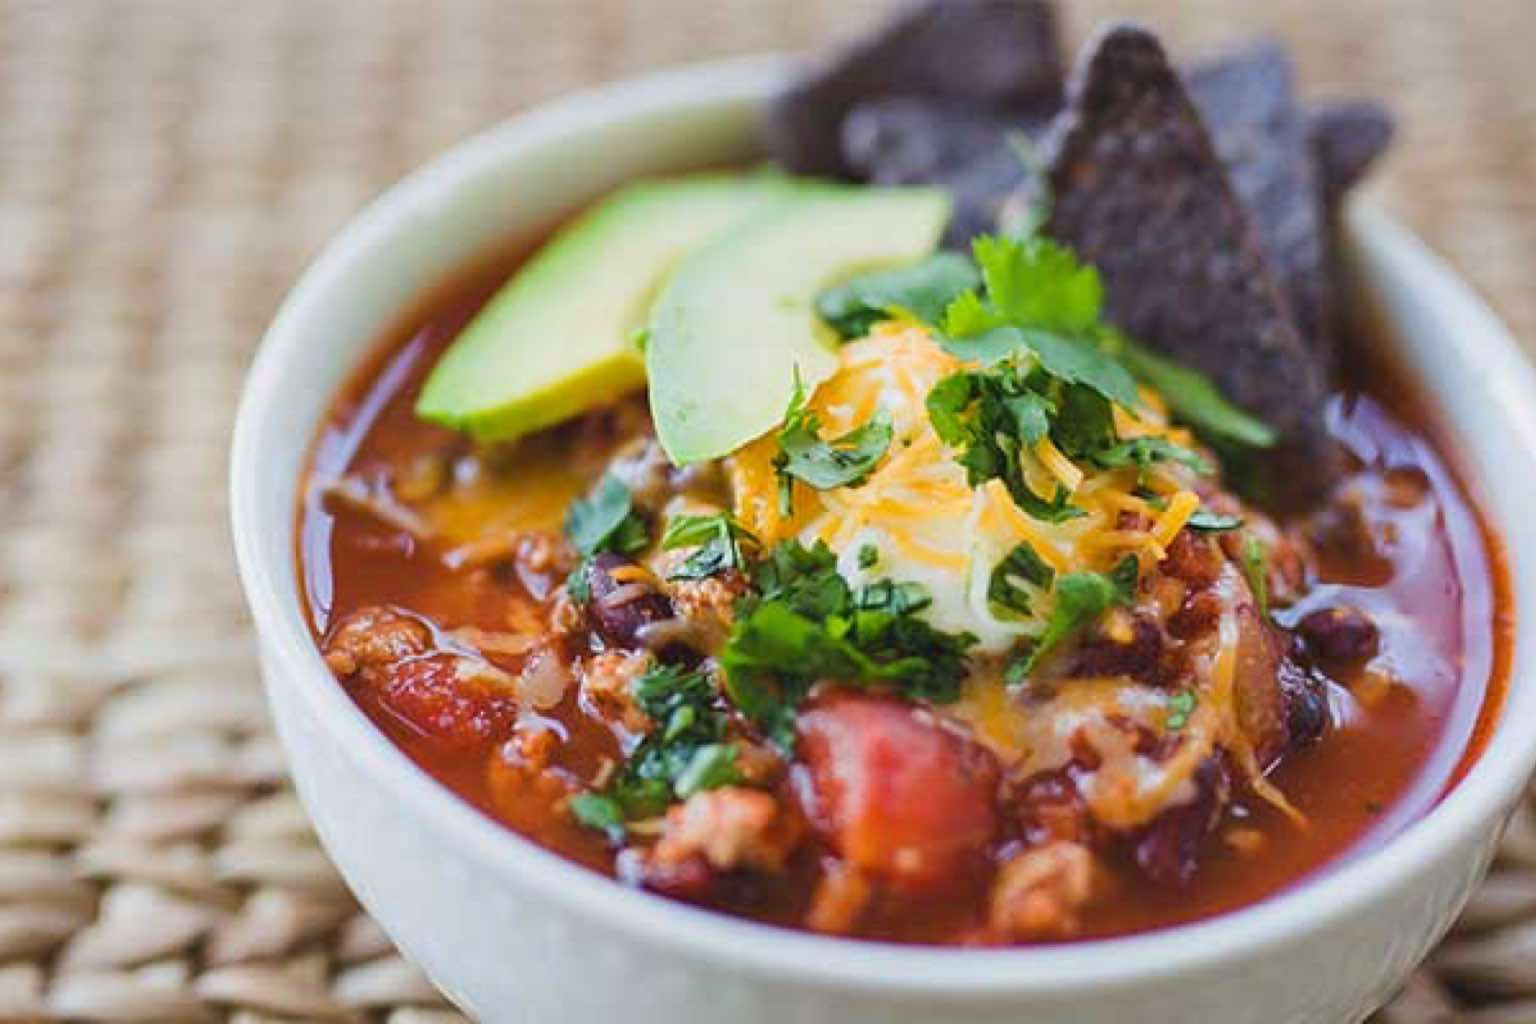 Close view of a bowl of chili topped with avocado, tortilla chips, shredded cheese and cilantro